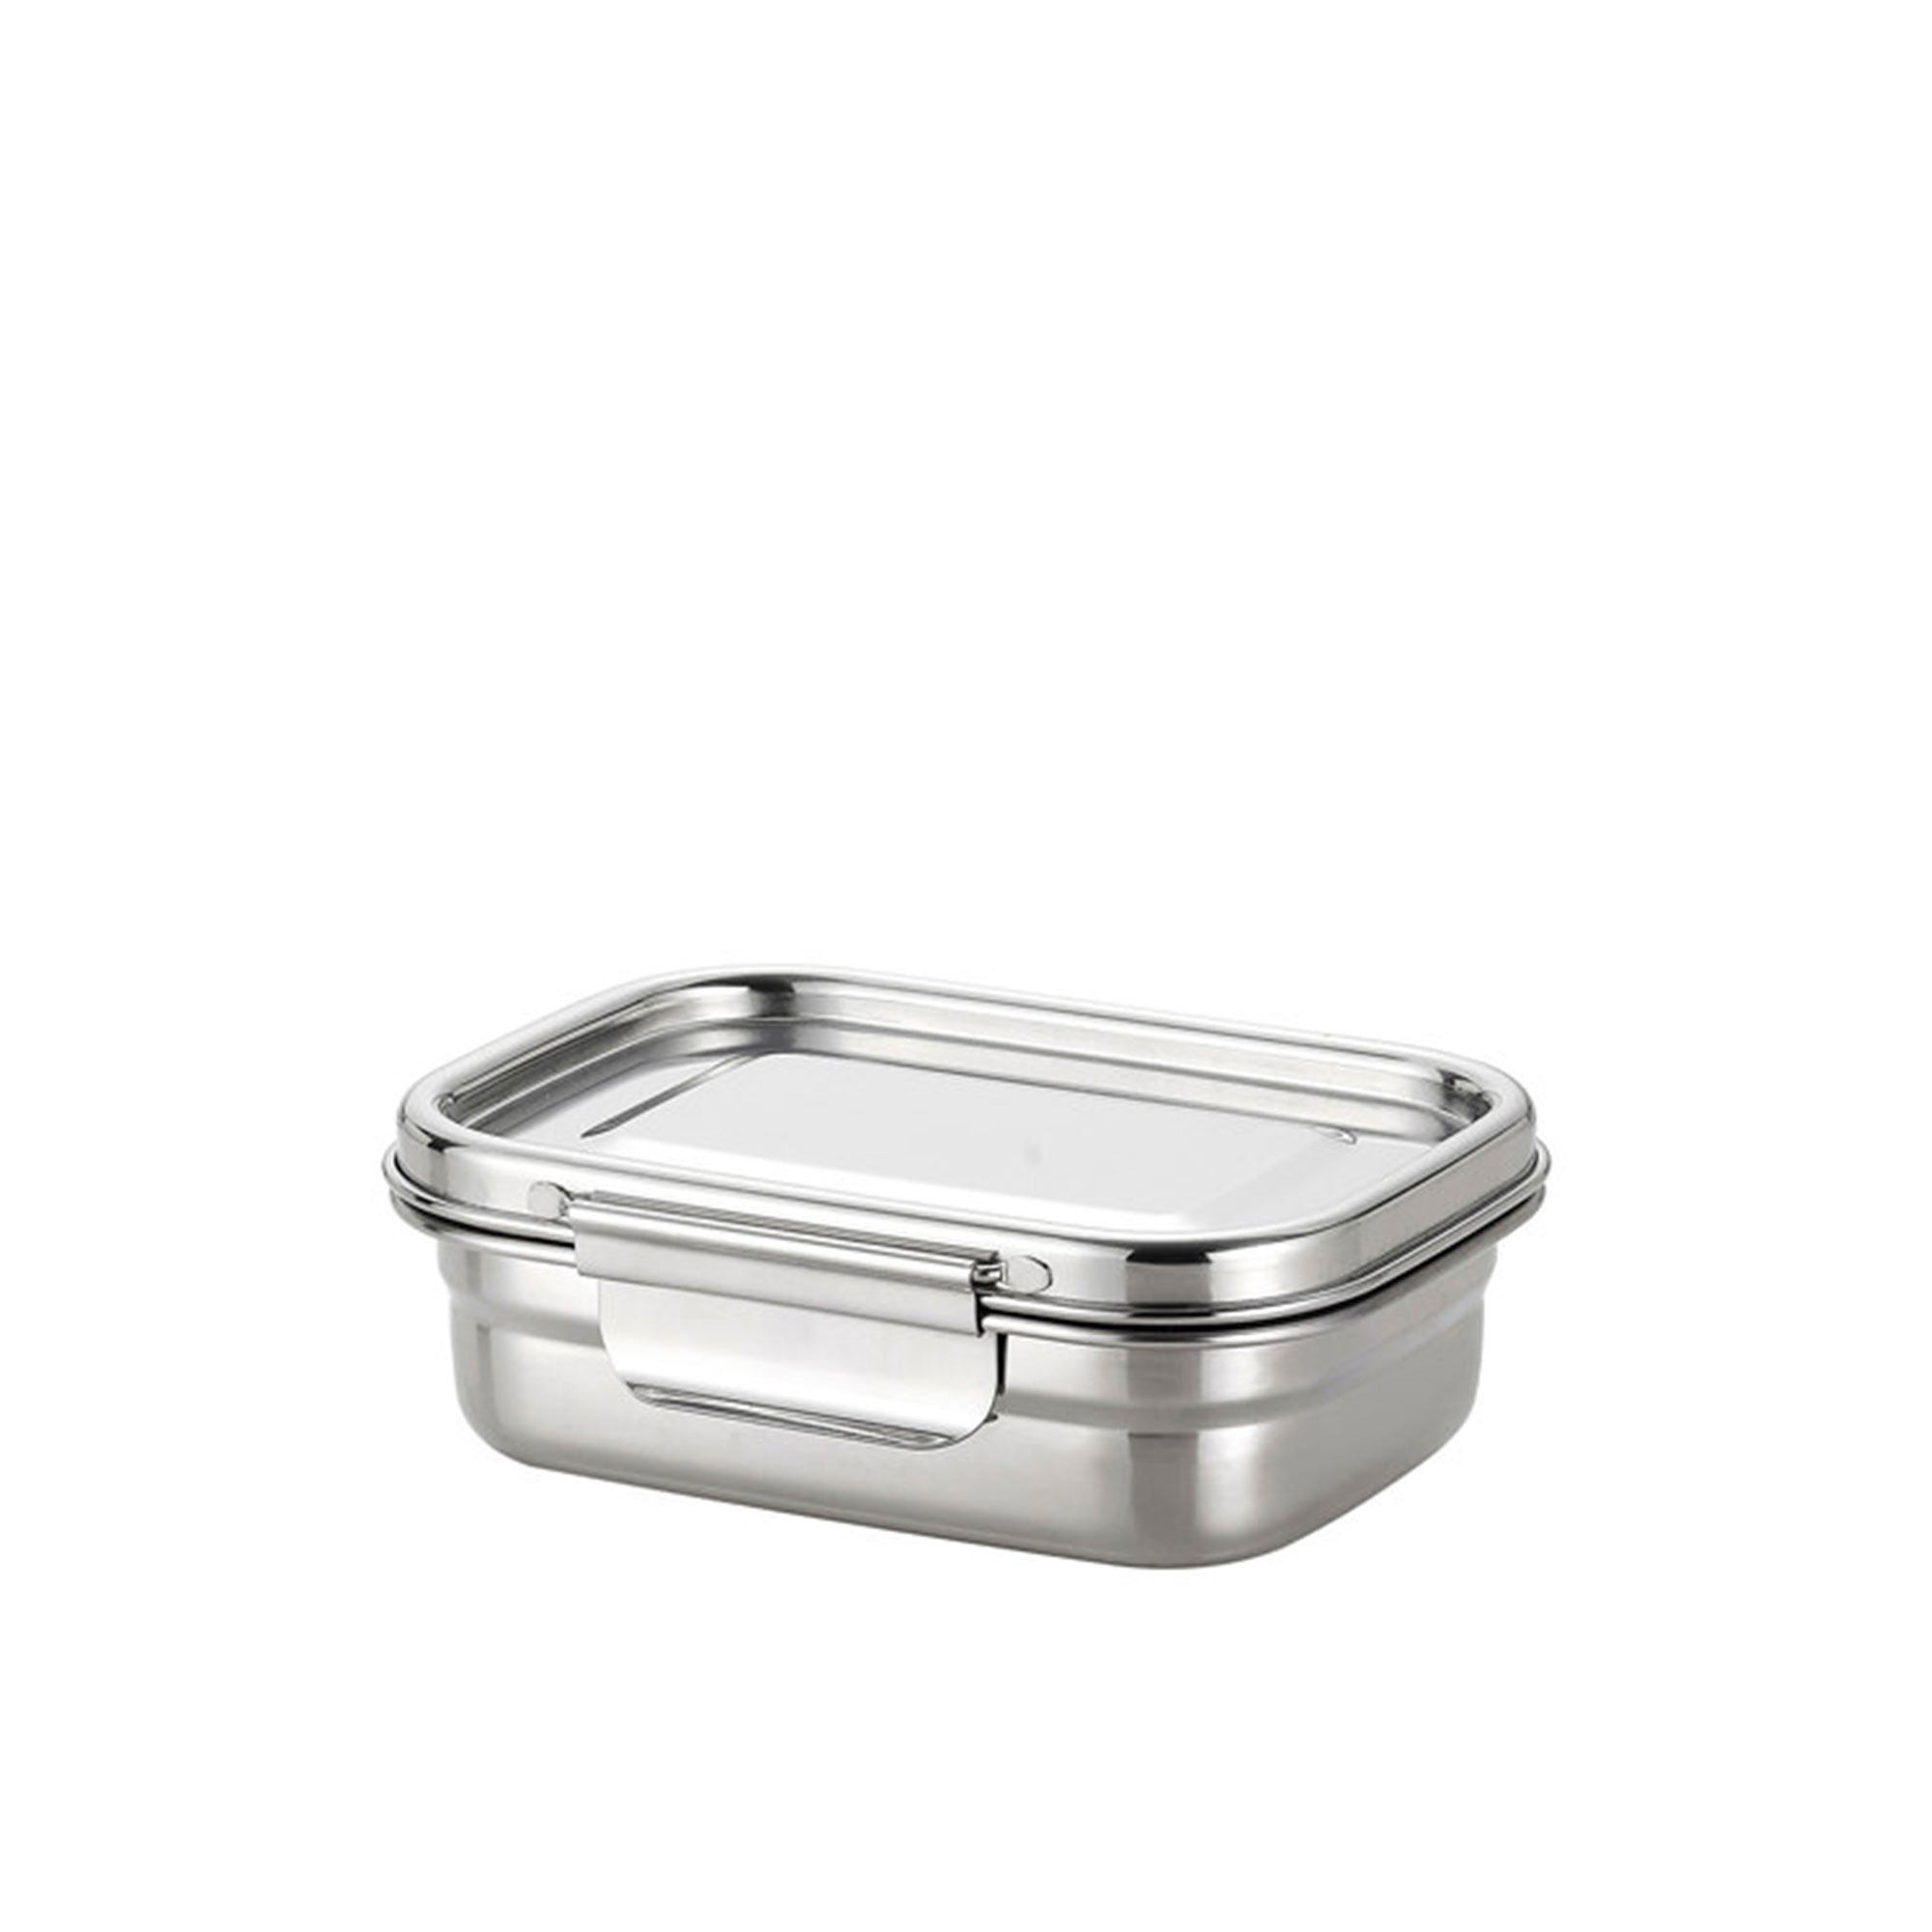 Avanti Dry Cell Stainless Steel Food Container 780ml